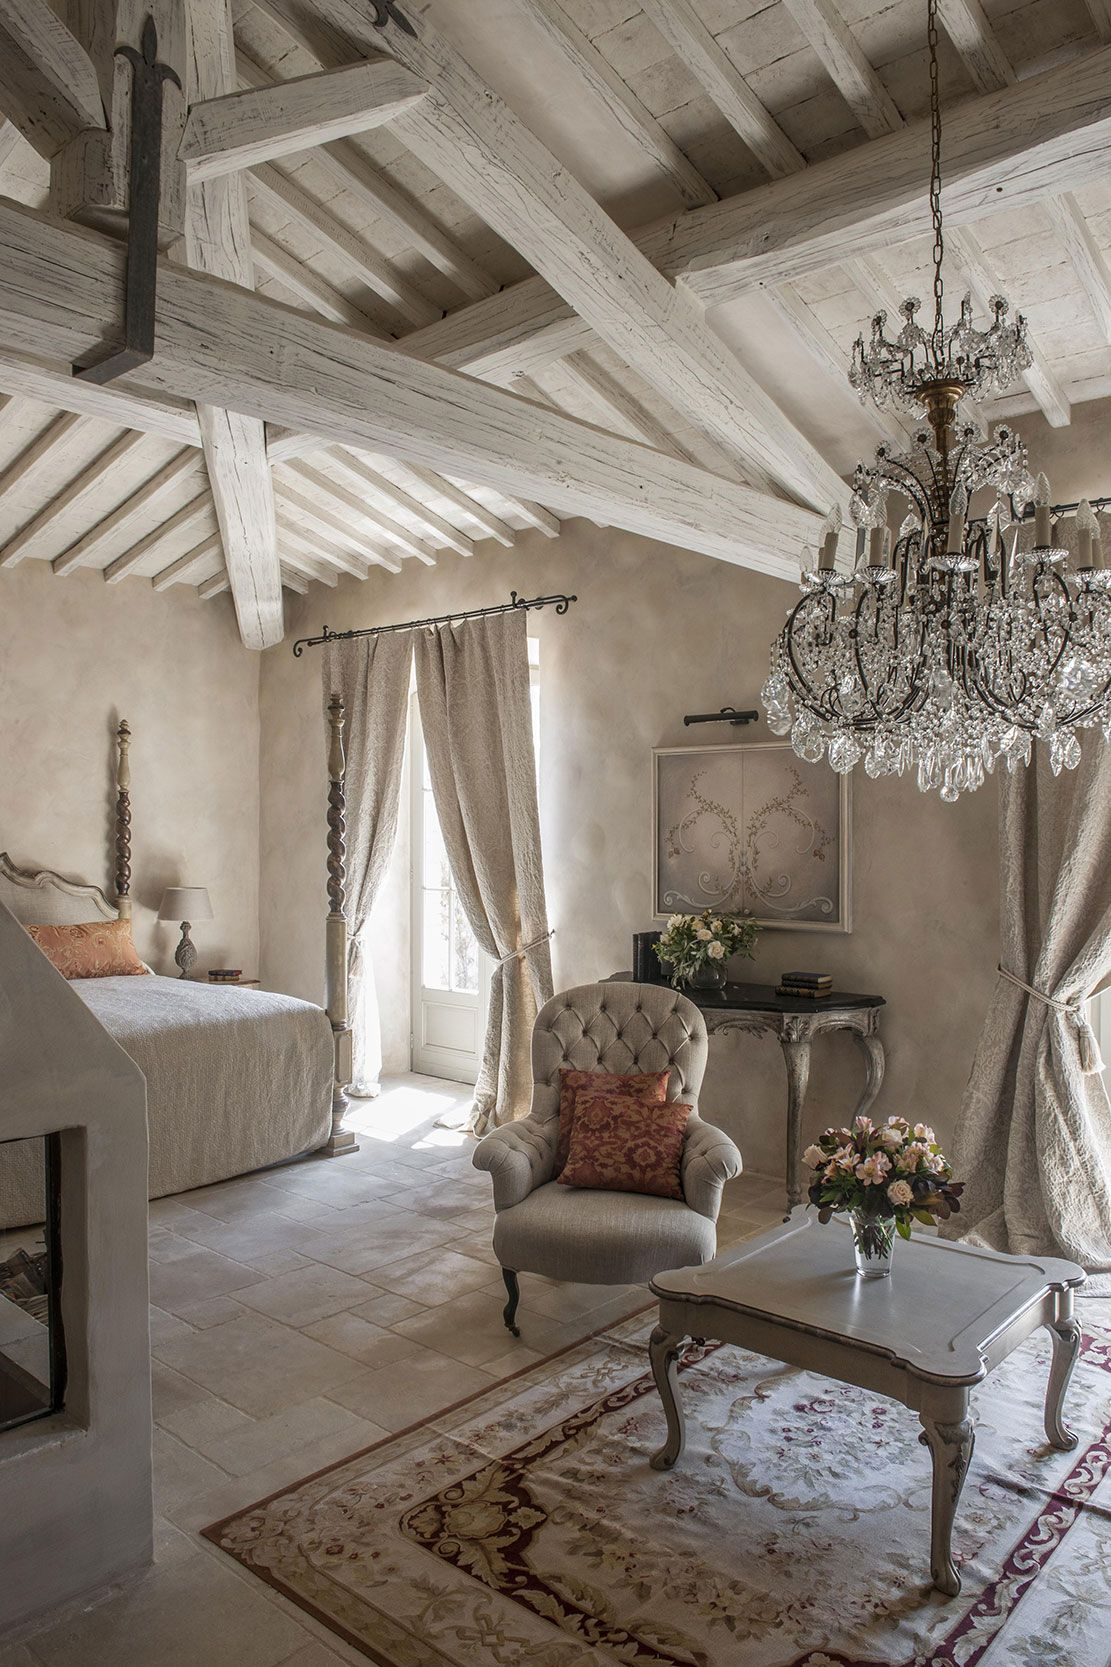 10 Tips For Creating The Most Relaxing French Country